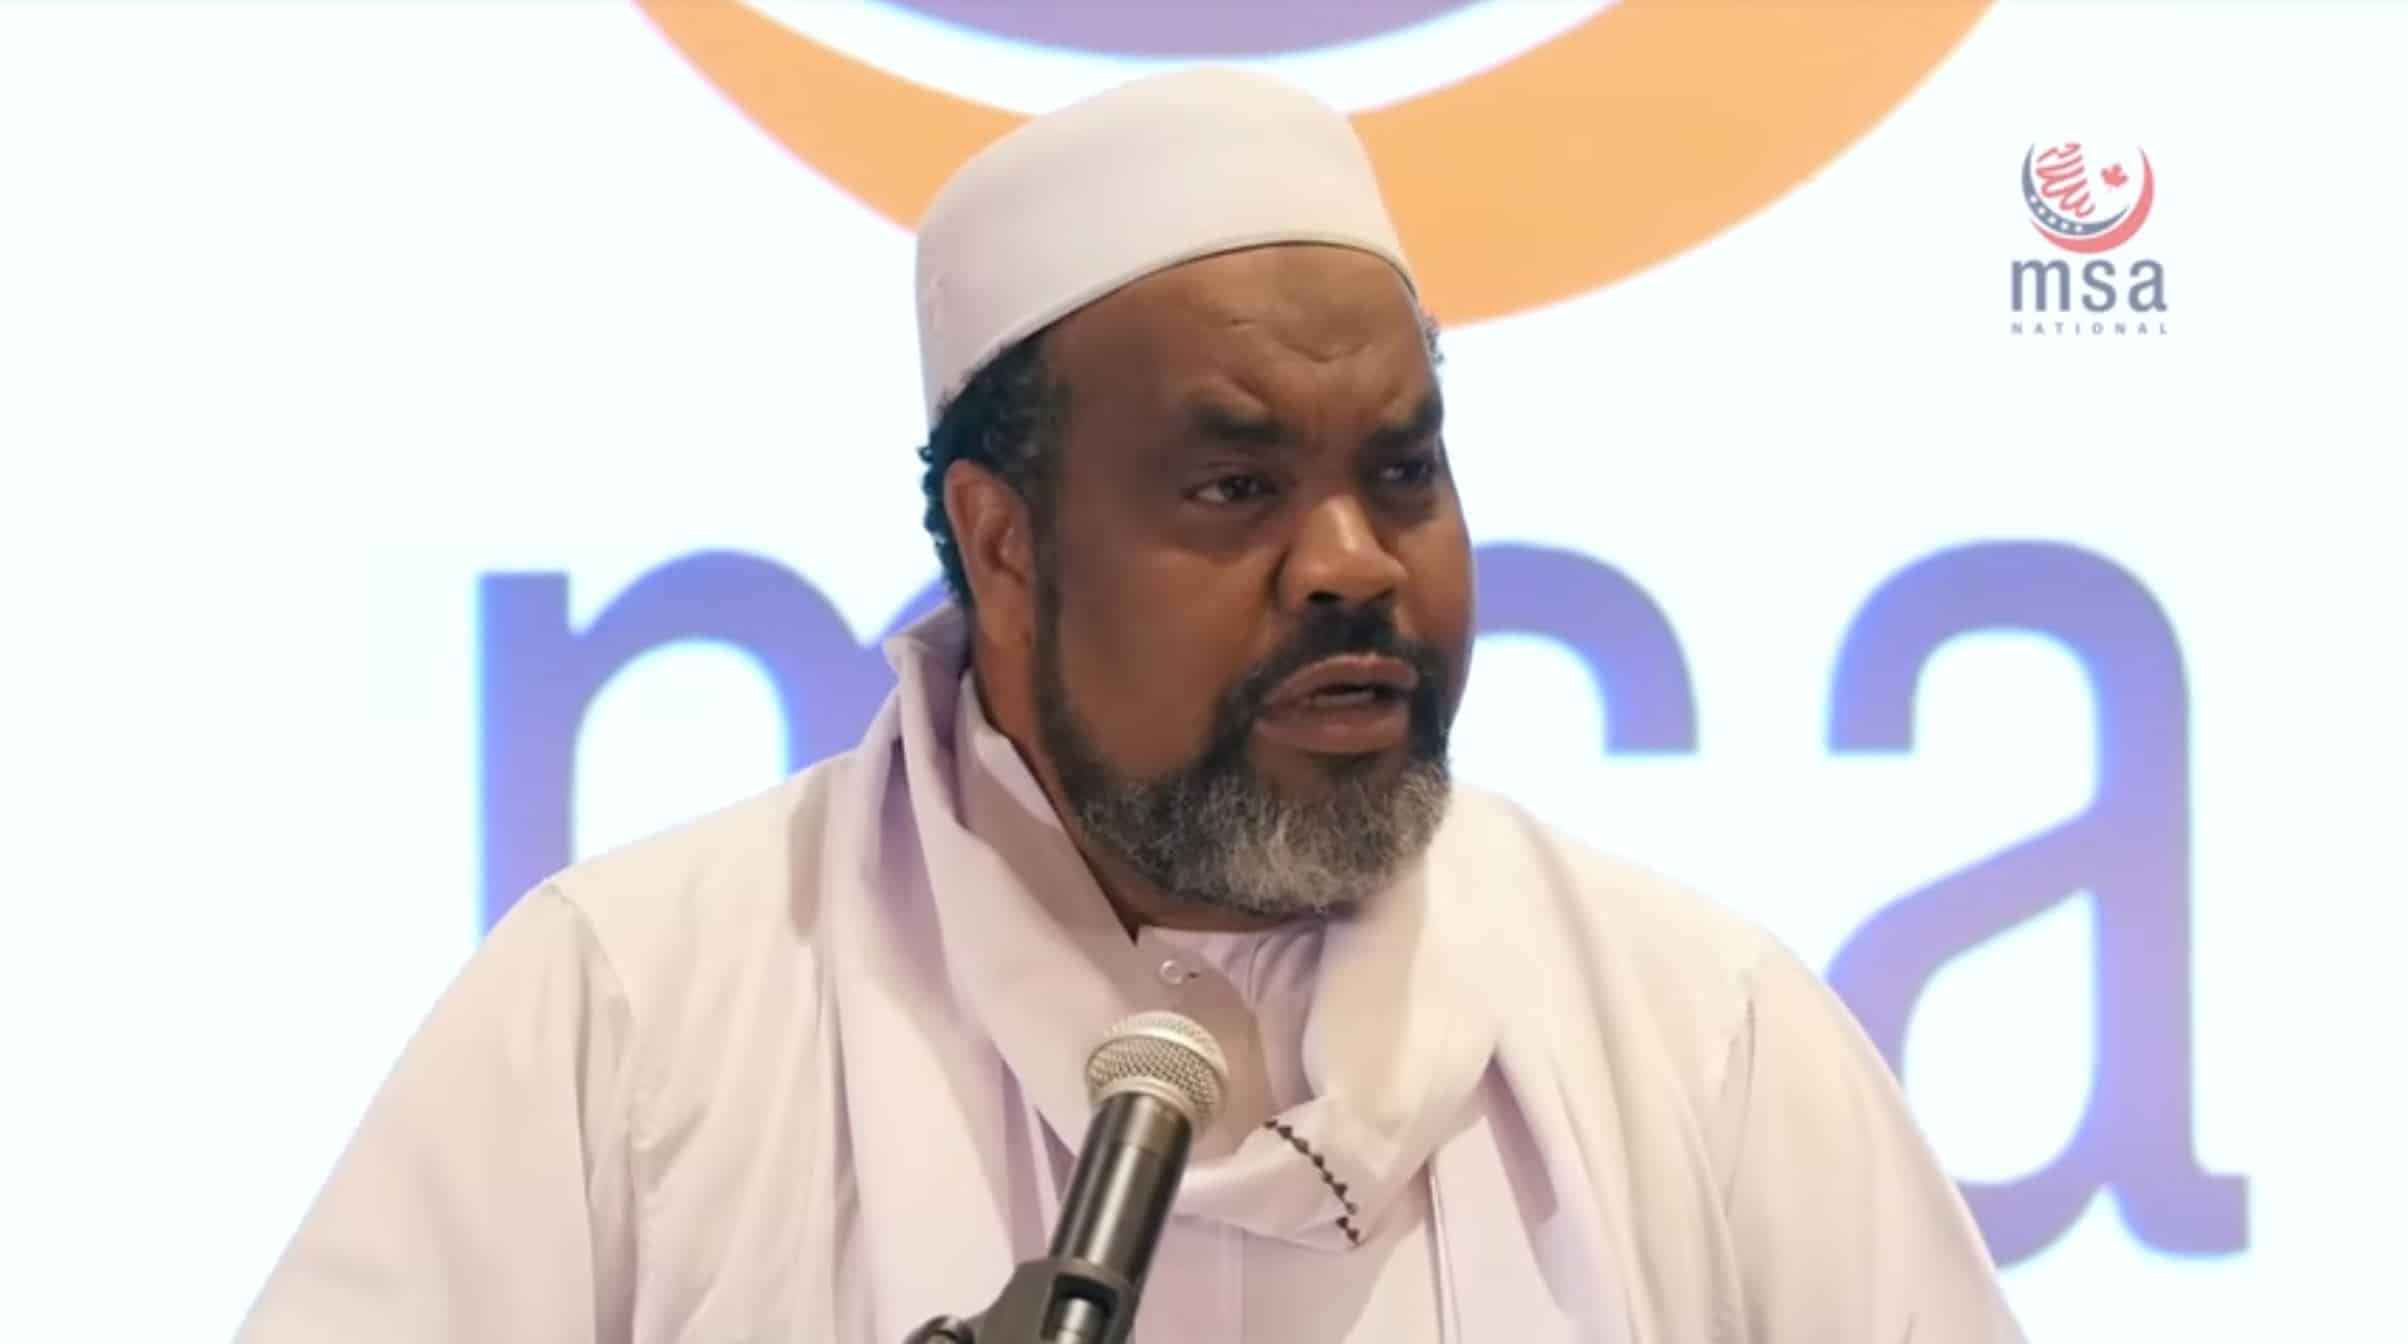 Mohamed Magid – You Can Only Rely On Allah